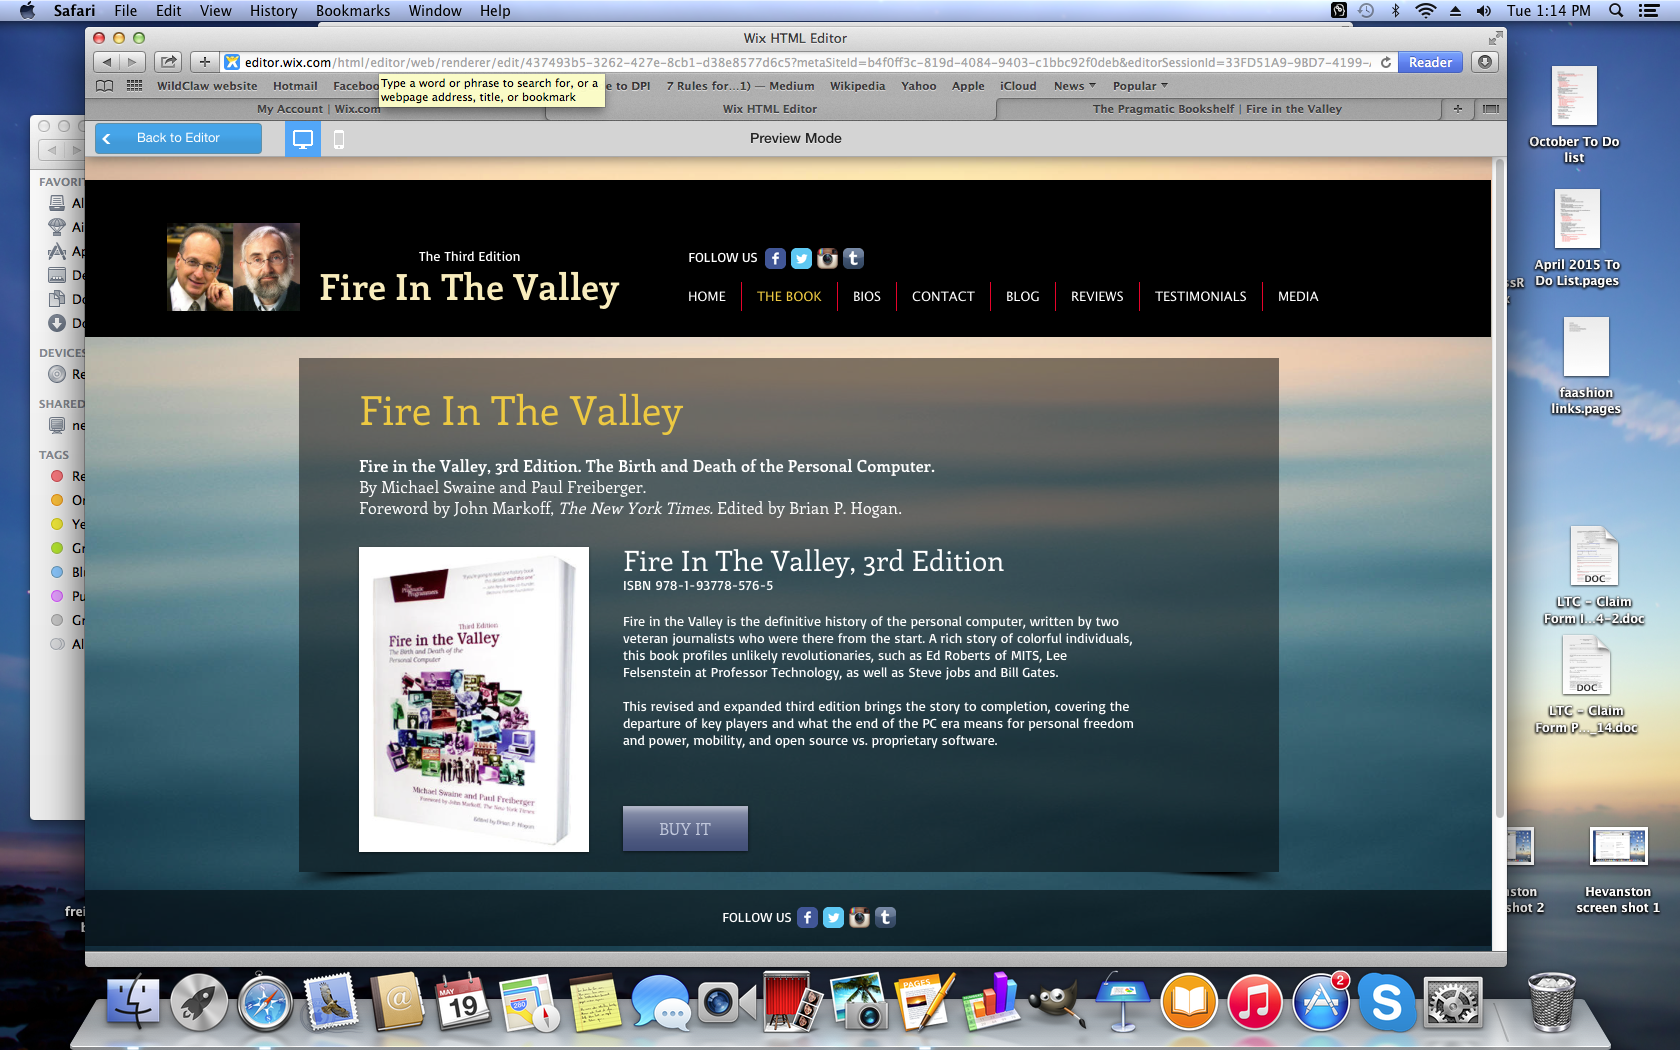 Fire in the Valley book